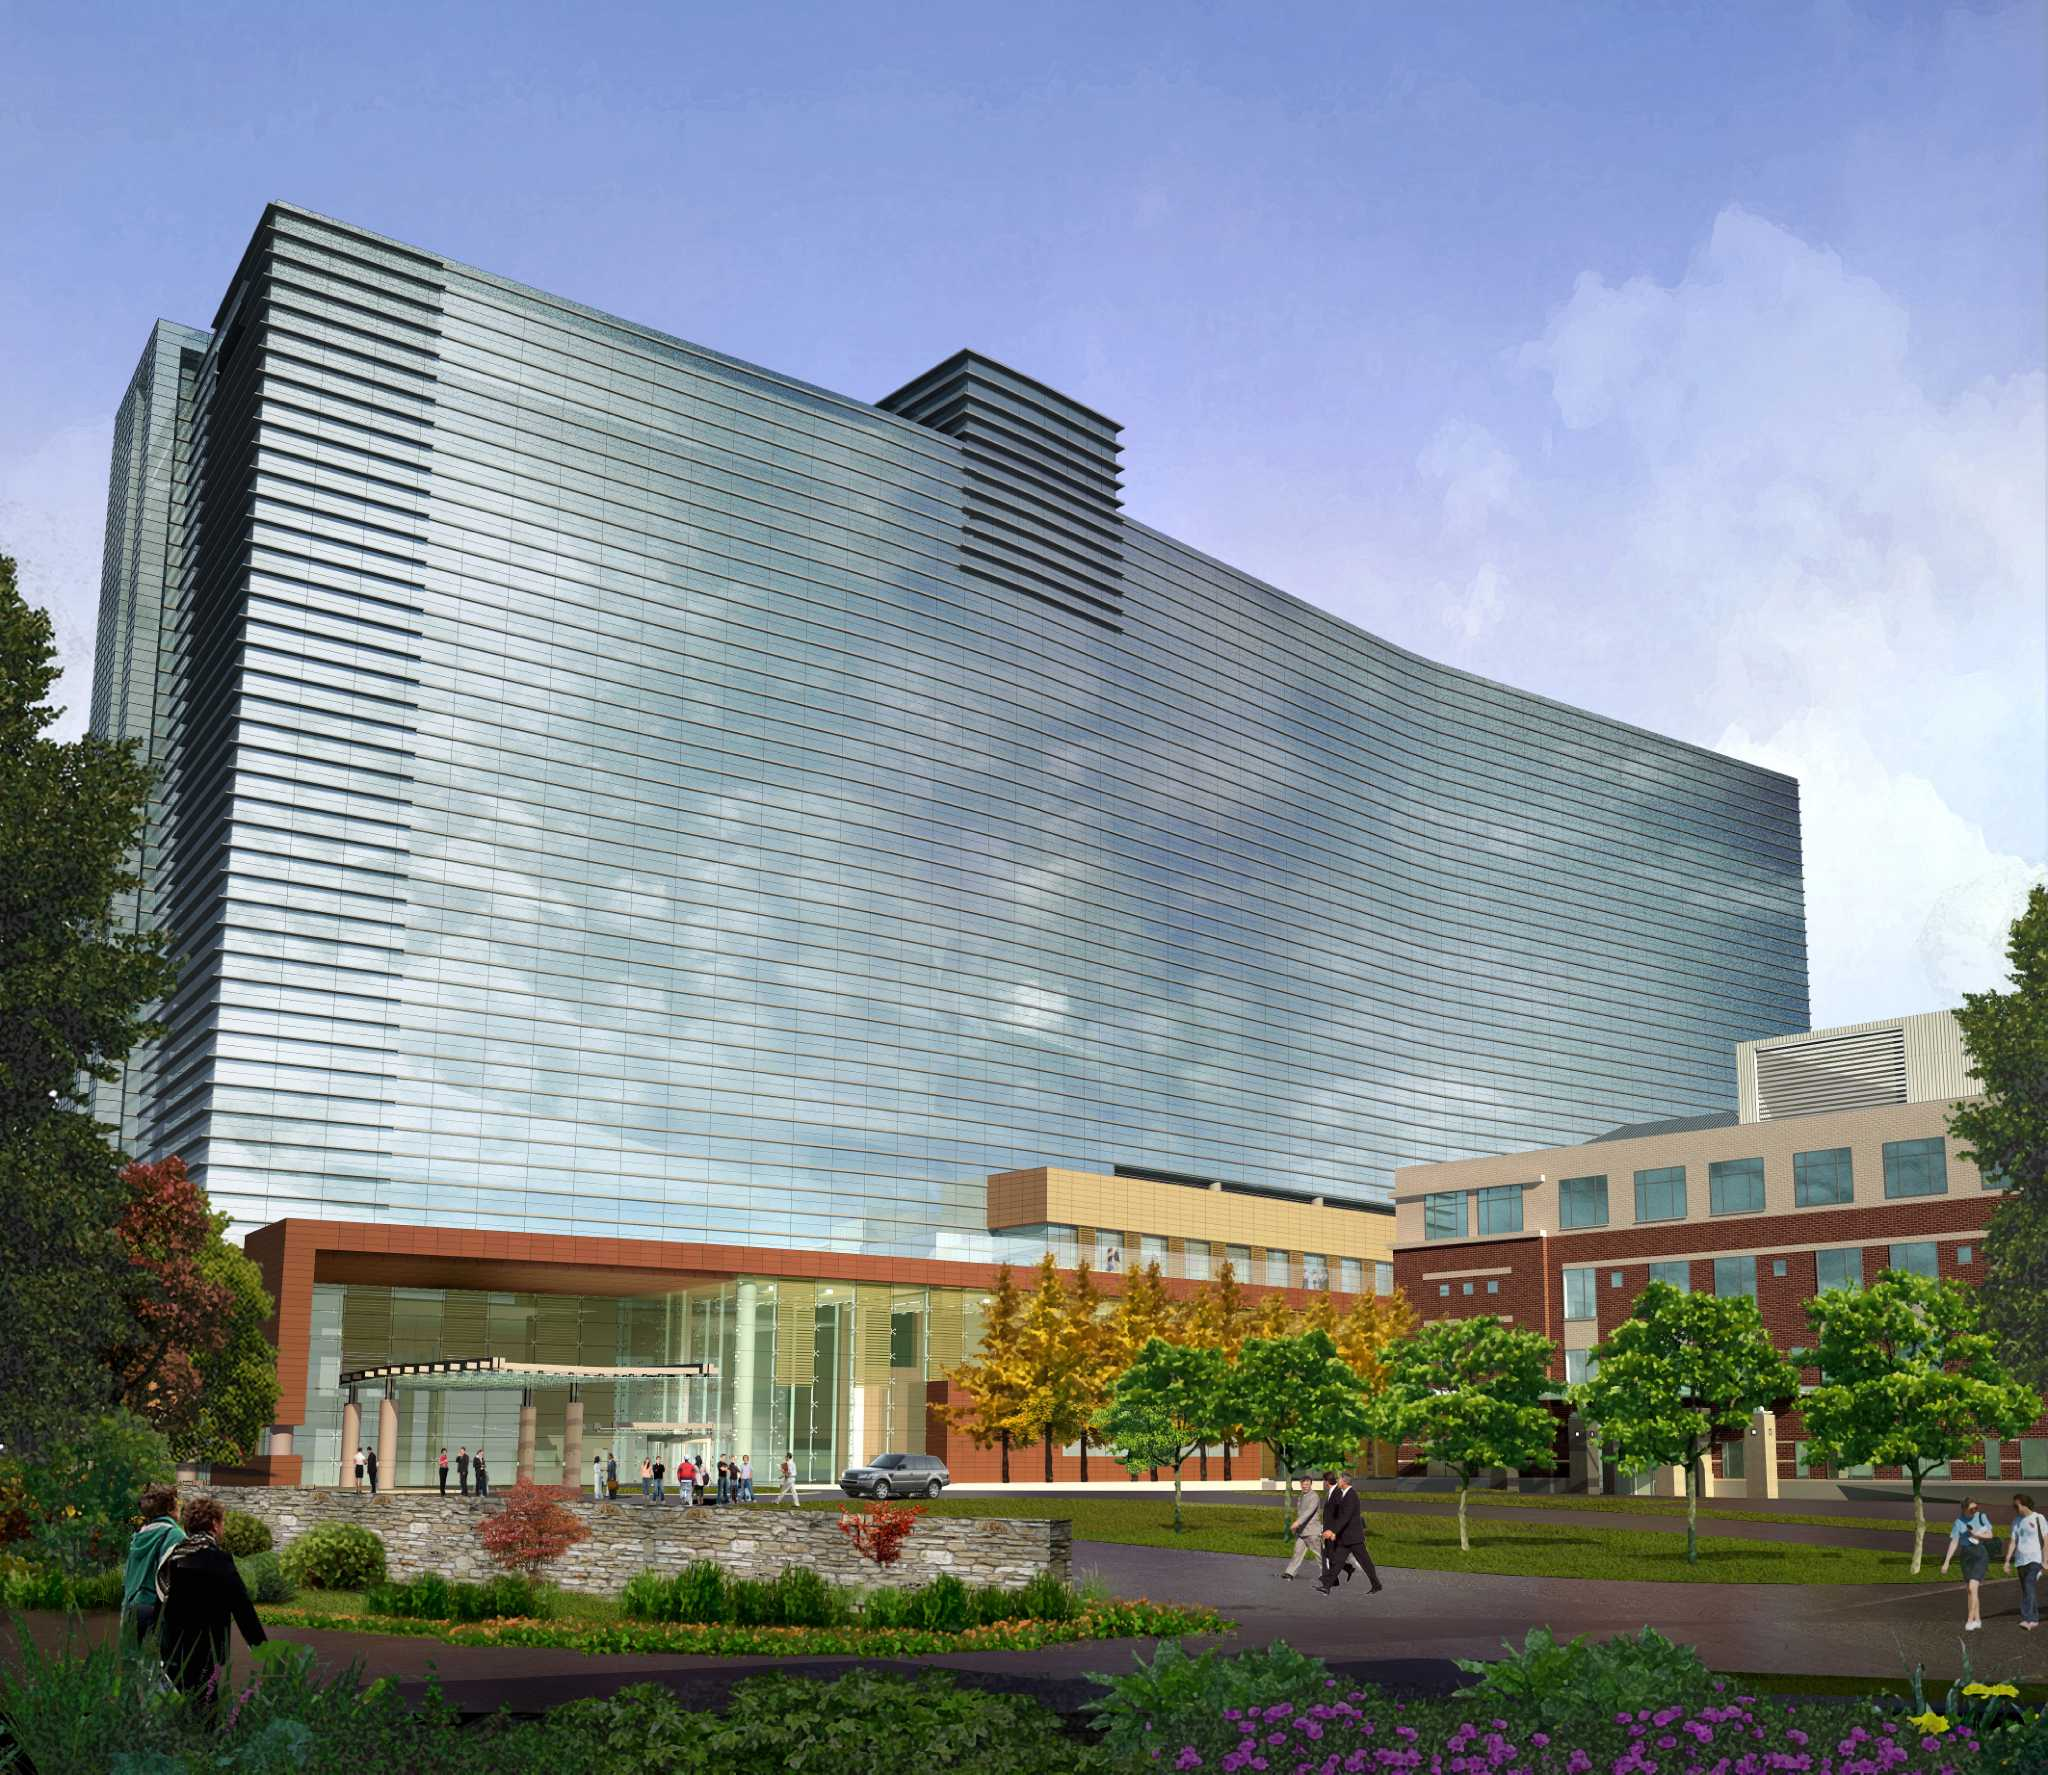 Zoning Board Reviews Hospital Plans